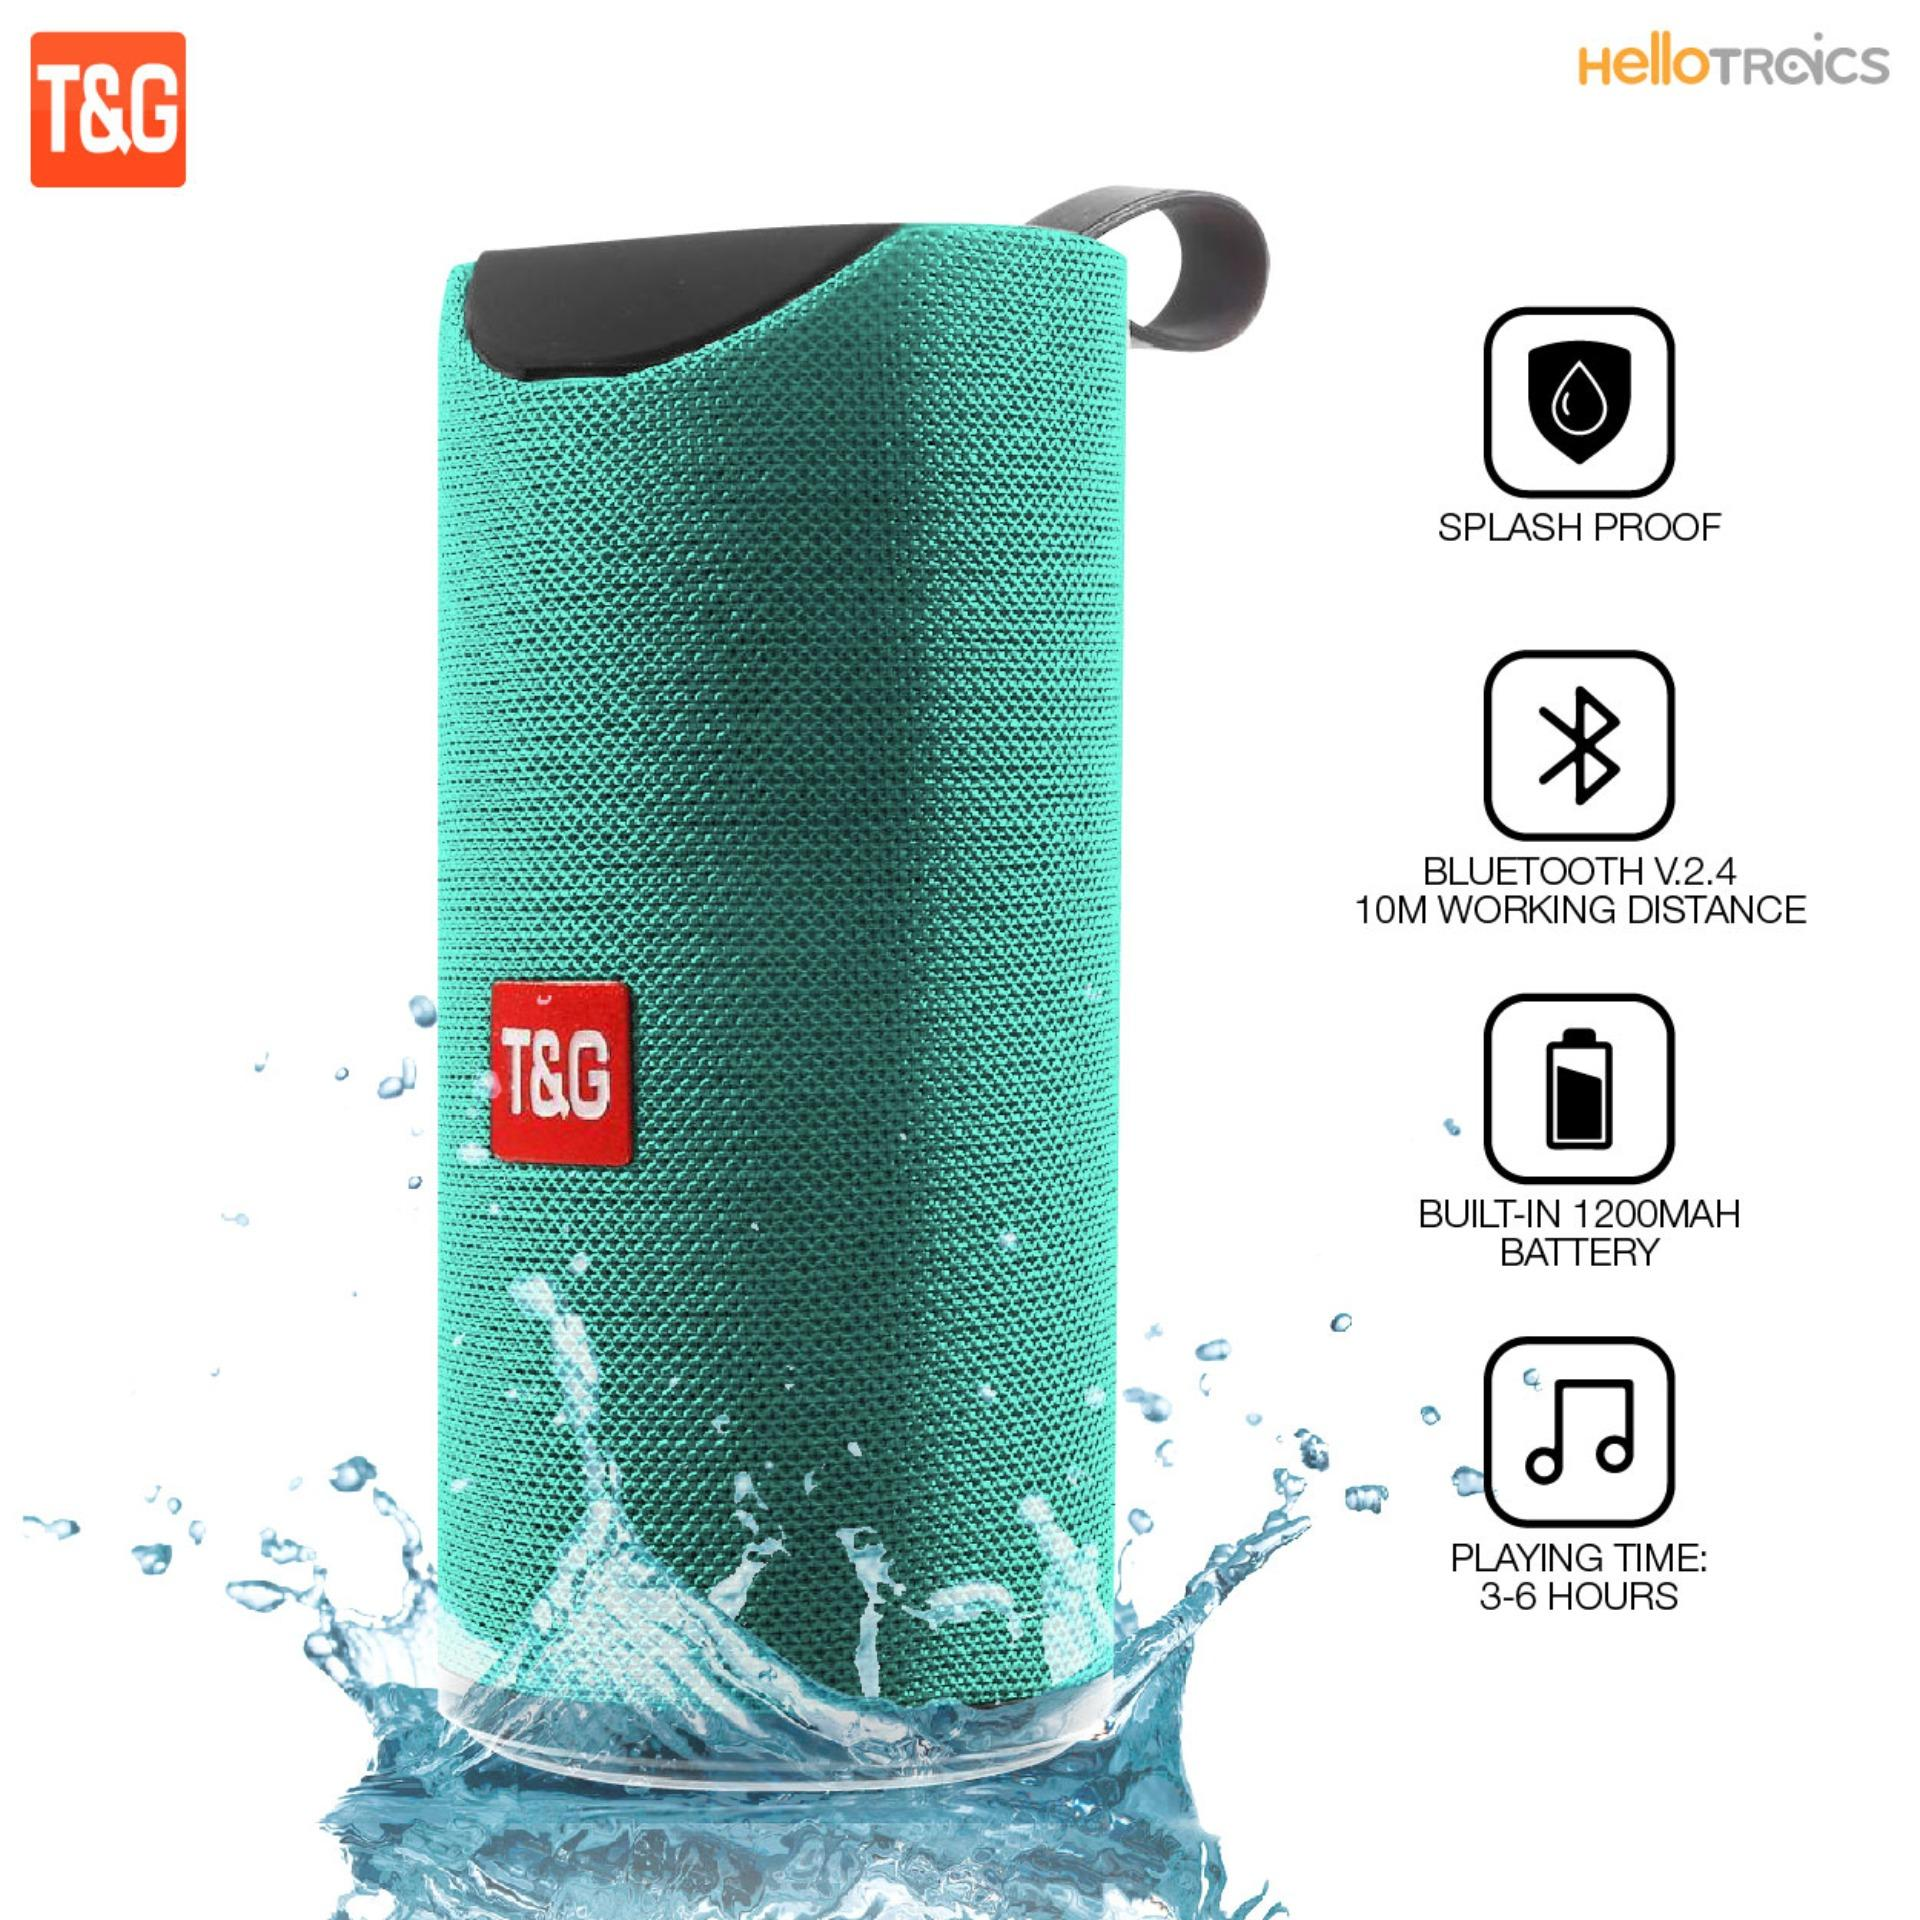 T&g Tg113 Super Bass Splash-Proof Bluetooth Speaker By Hellotronics.